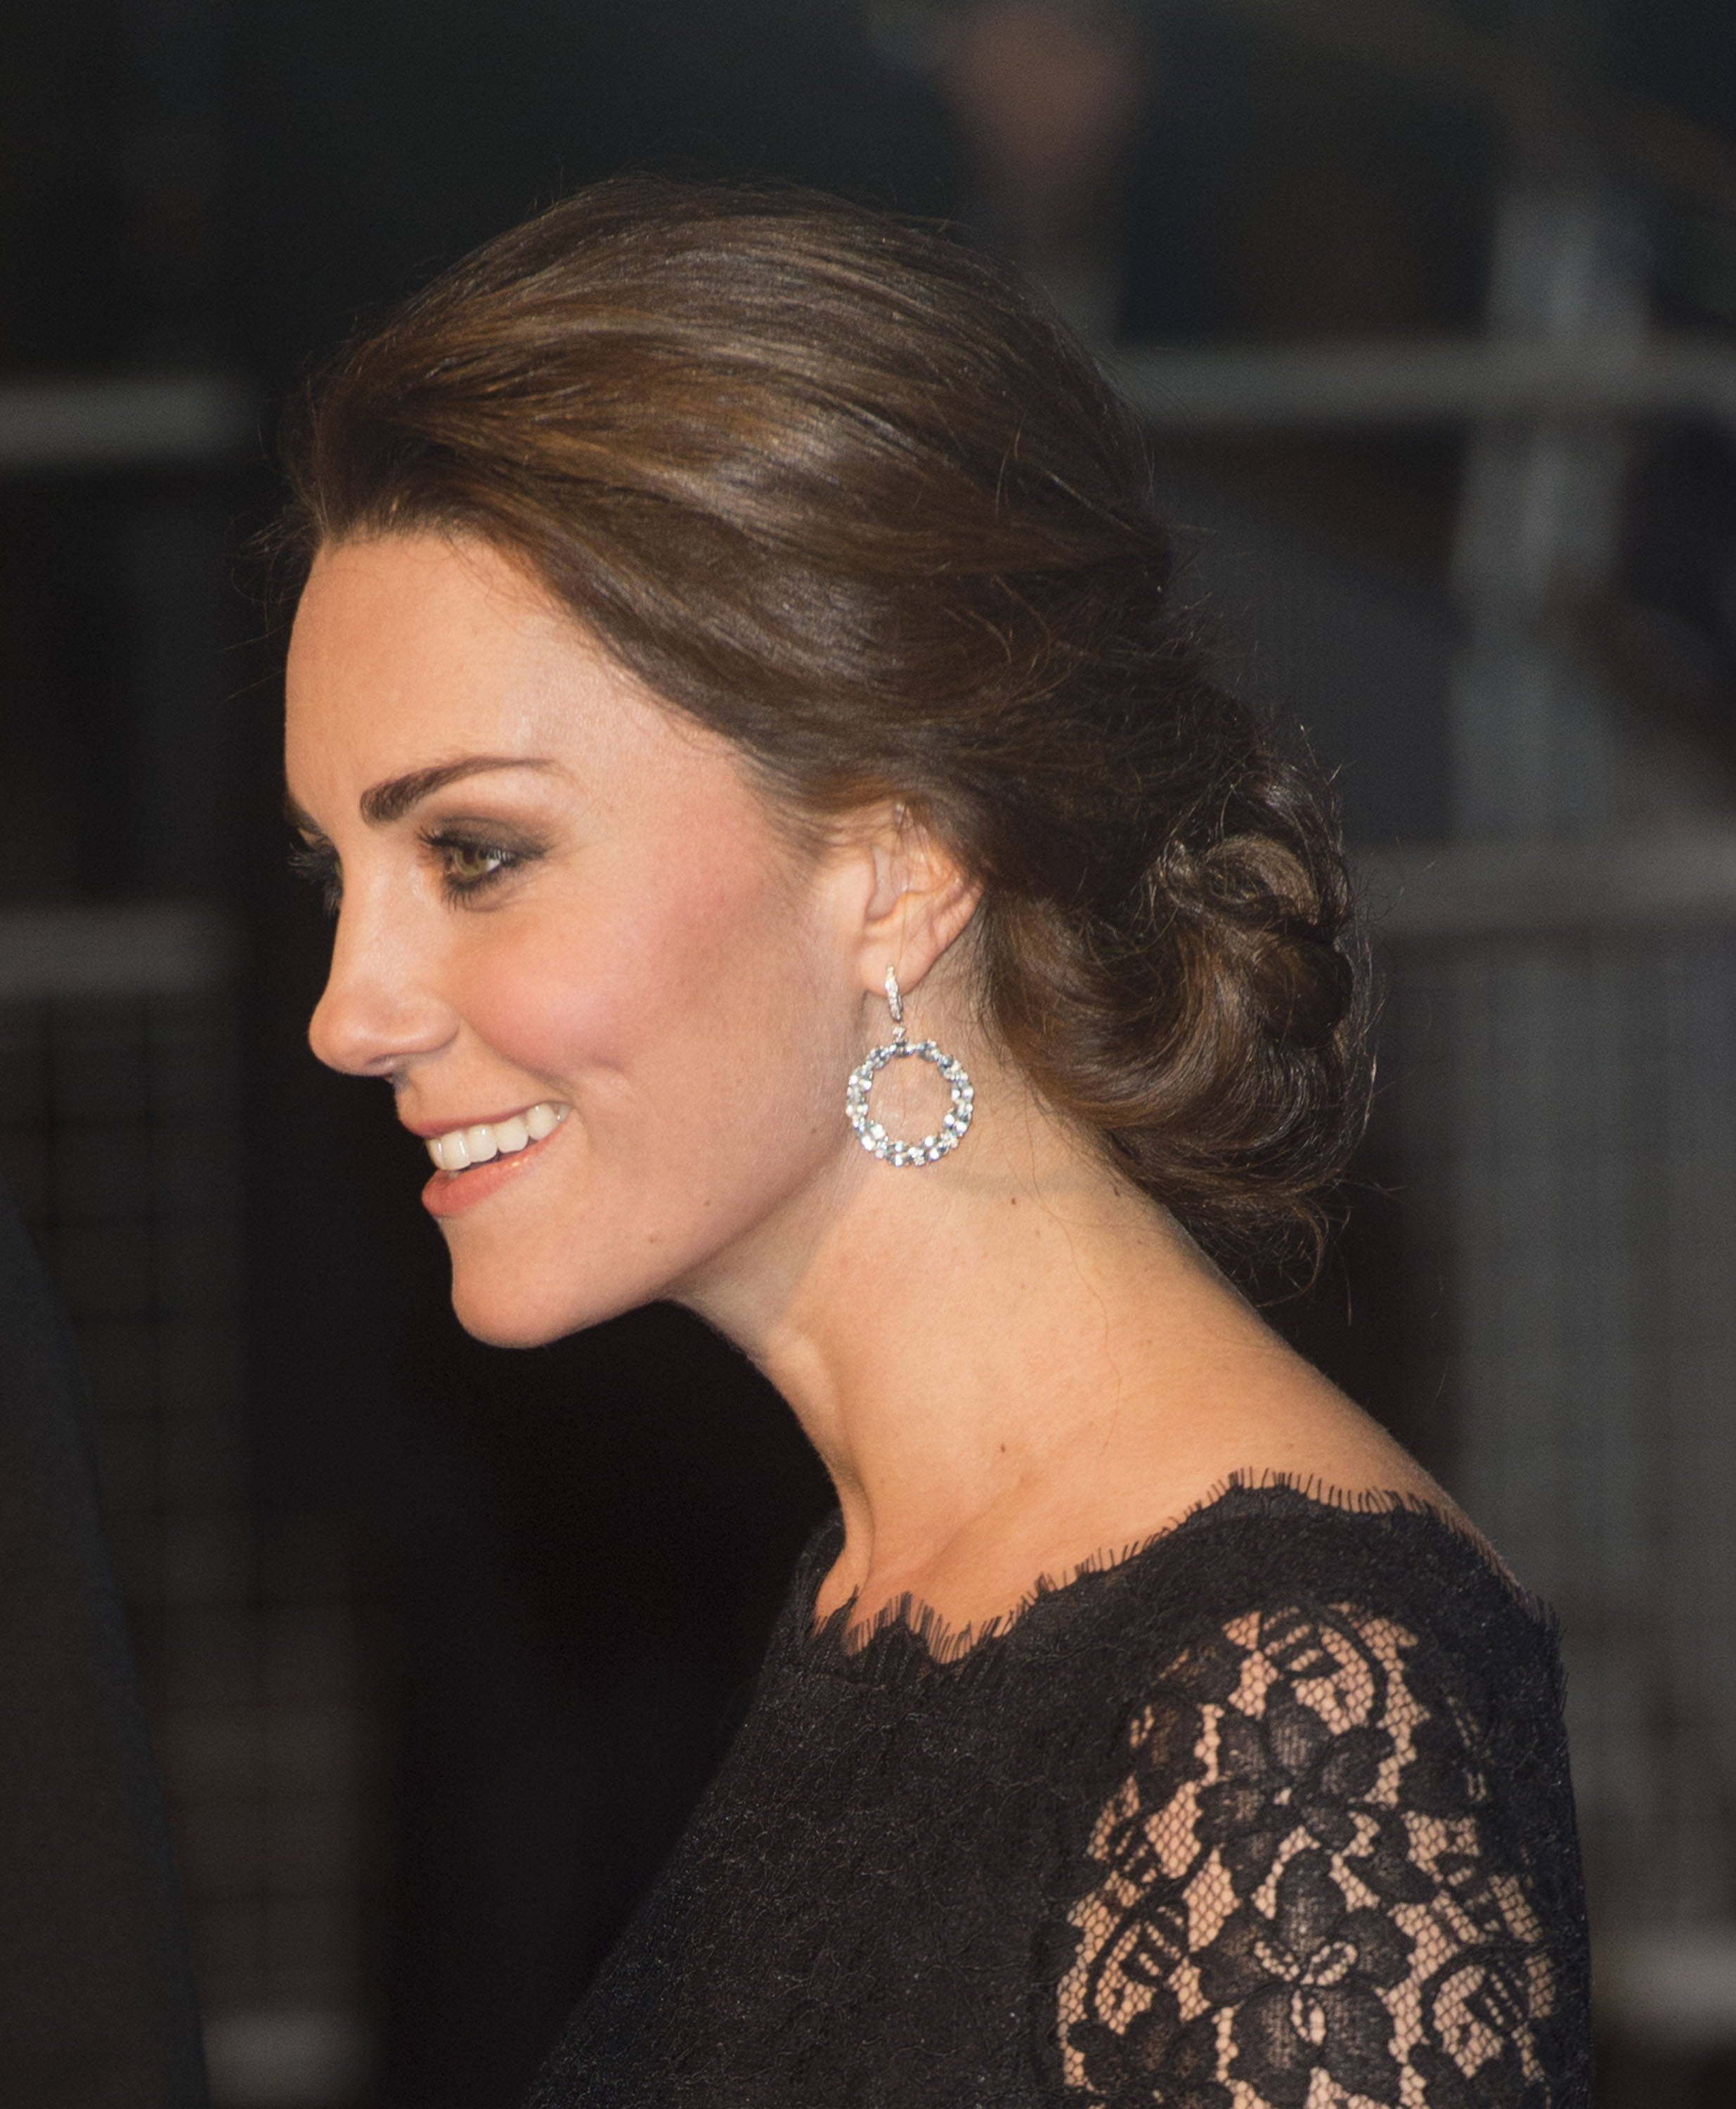 48 easy updo hairstyles for formal events - elegant updos to try